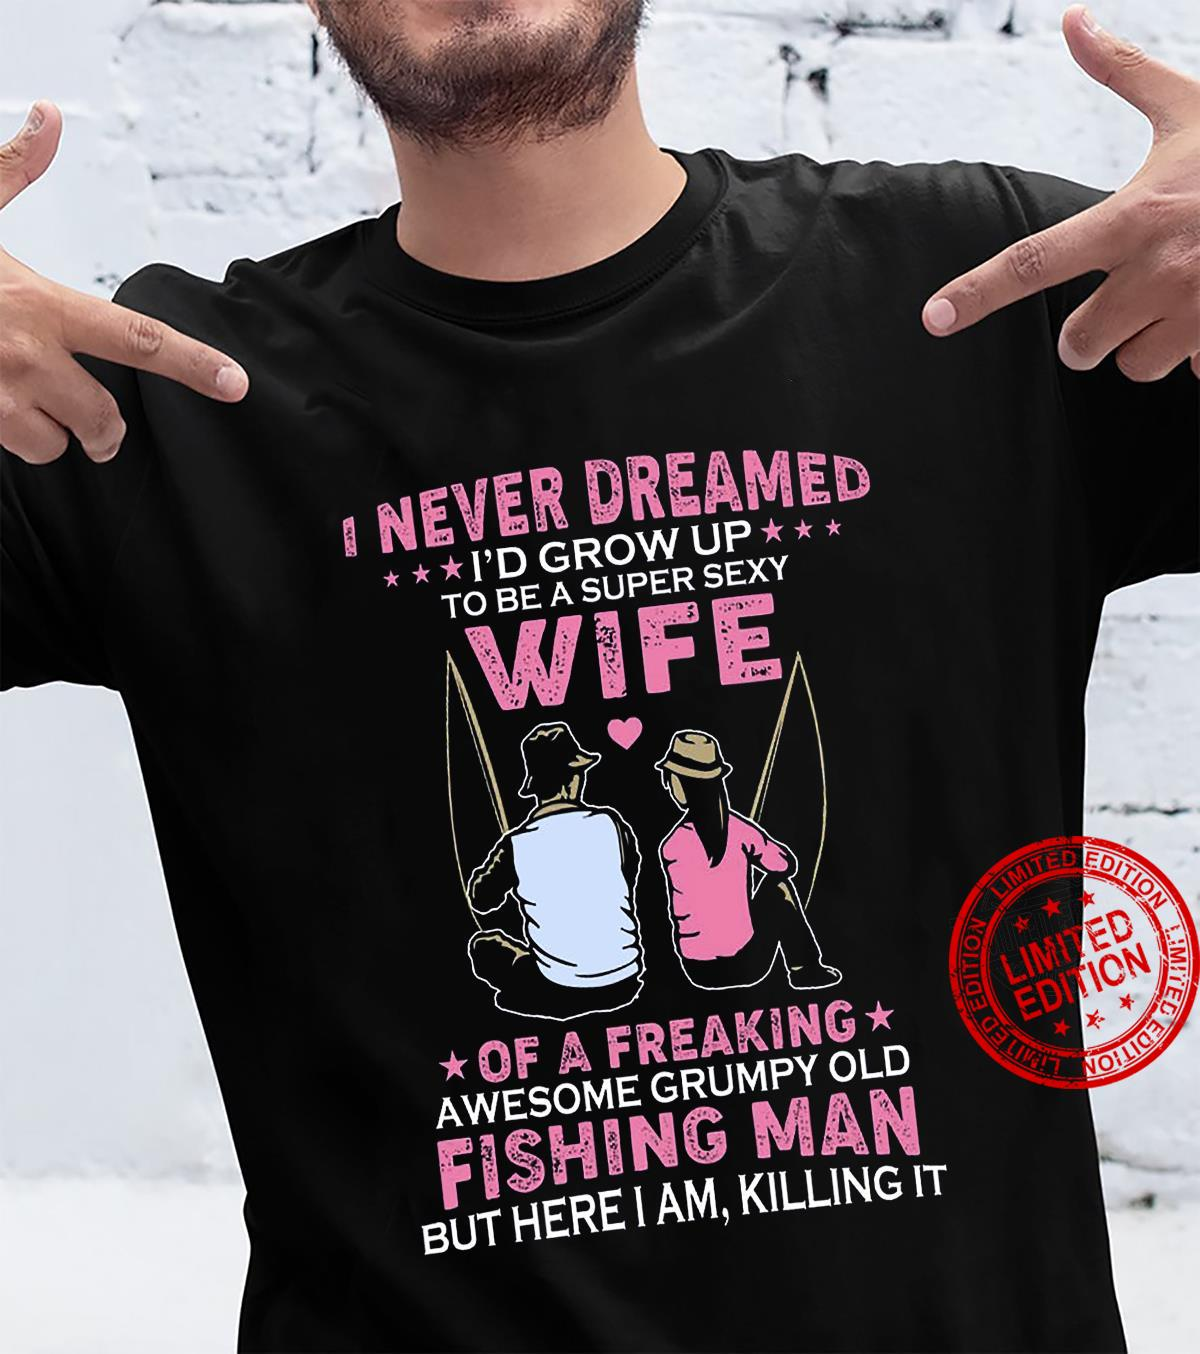 I Never Dreamed I'd Grow Up To Be A Super Sexy Wife Of A Freaking Awesome Grumpy Old Fishing Man Shirt